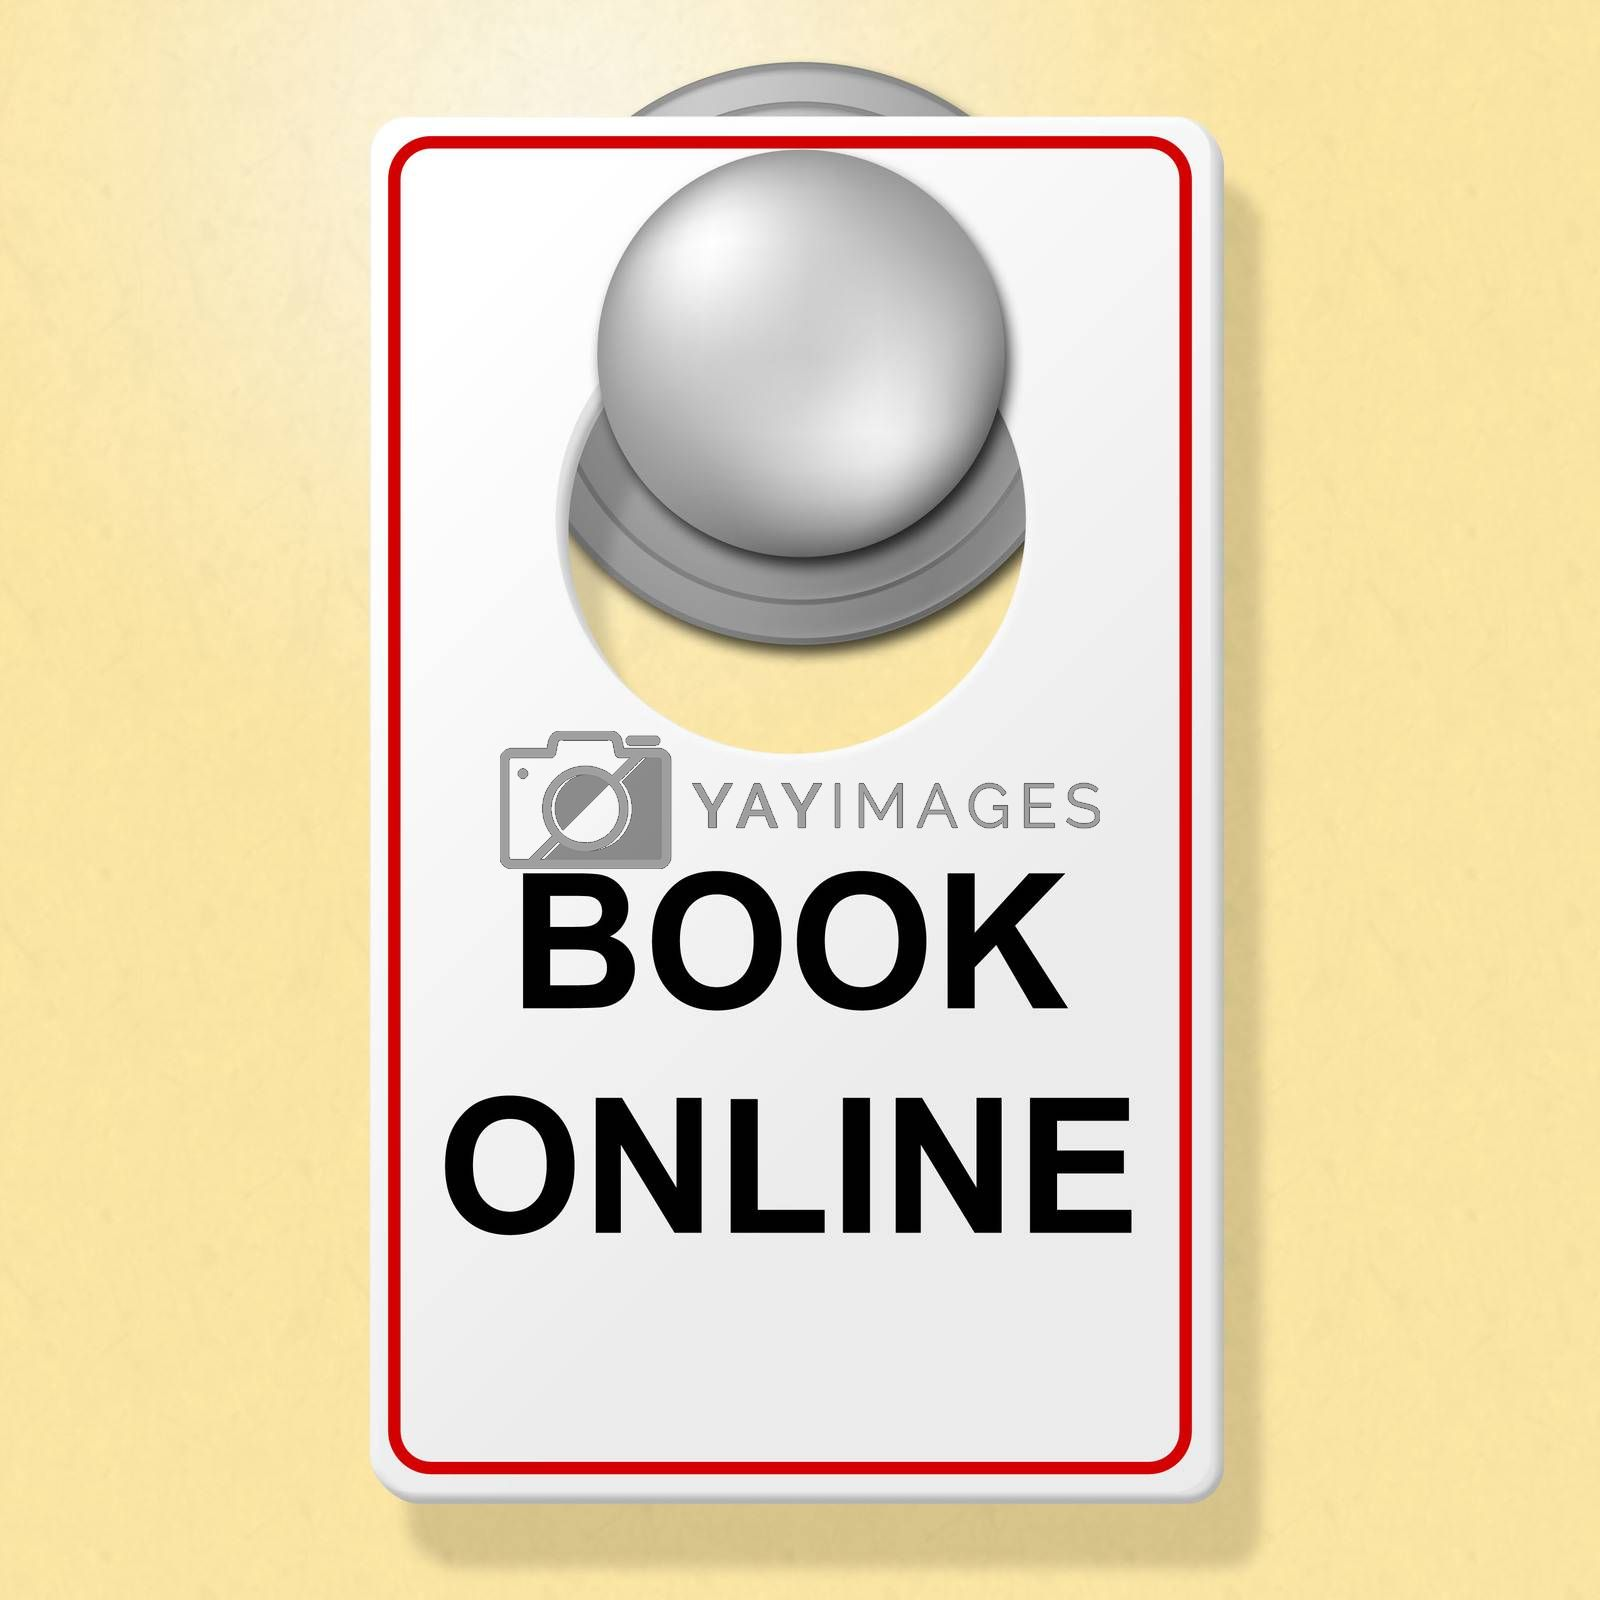 Book Online Sign Means Place To Stay And Booked by stuartmiles